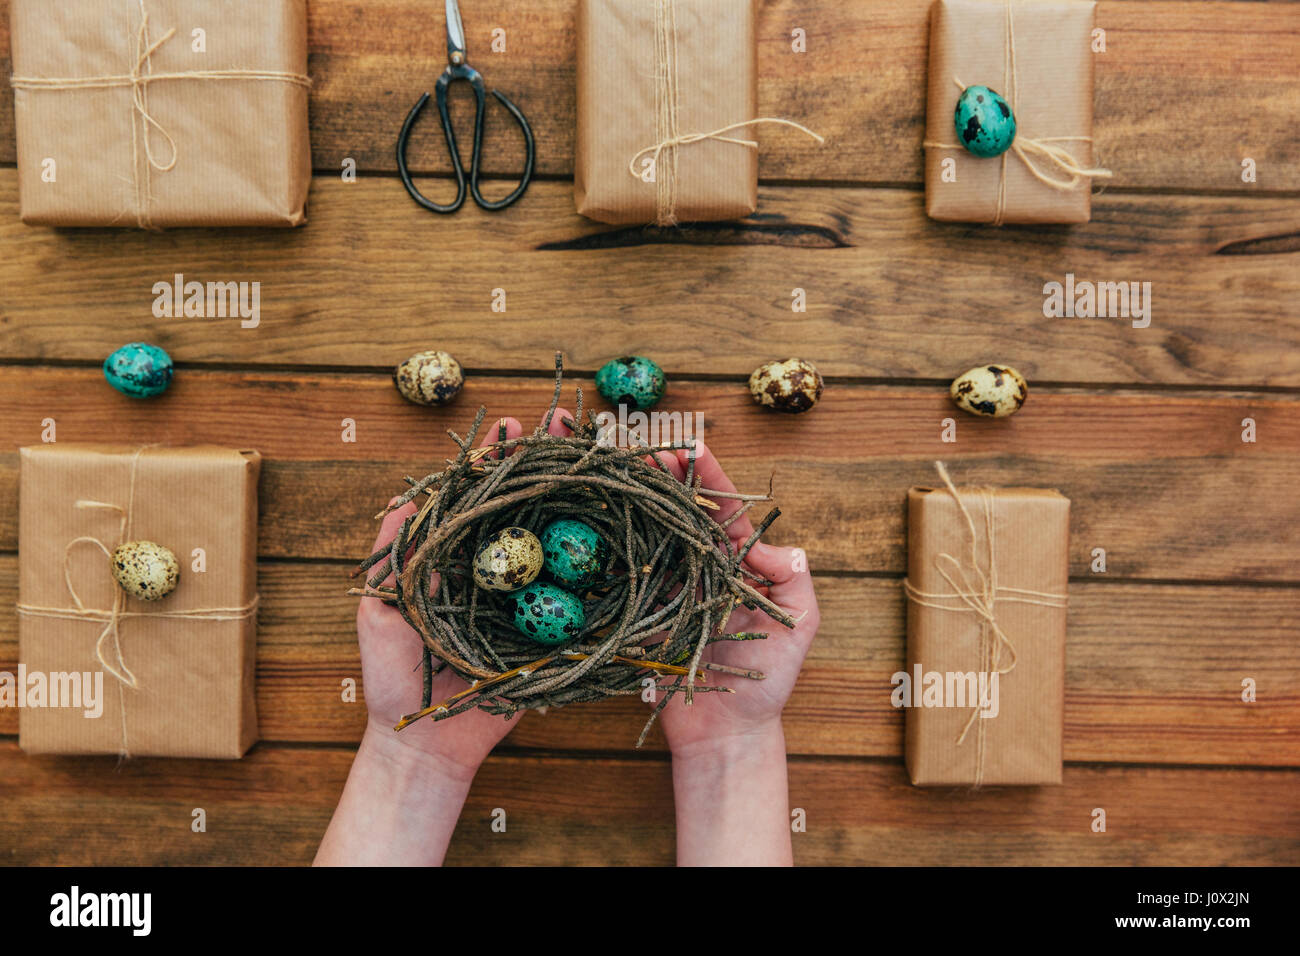 Wrapped gifts and girls hands holding a nest with easter eggs stock wrapped gifts and girls hands holding a nest with easter eggs negle Image collections